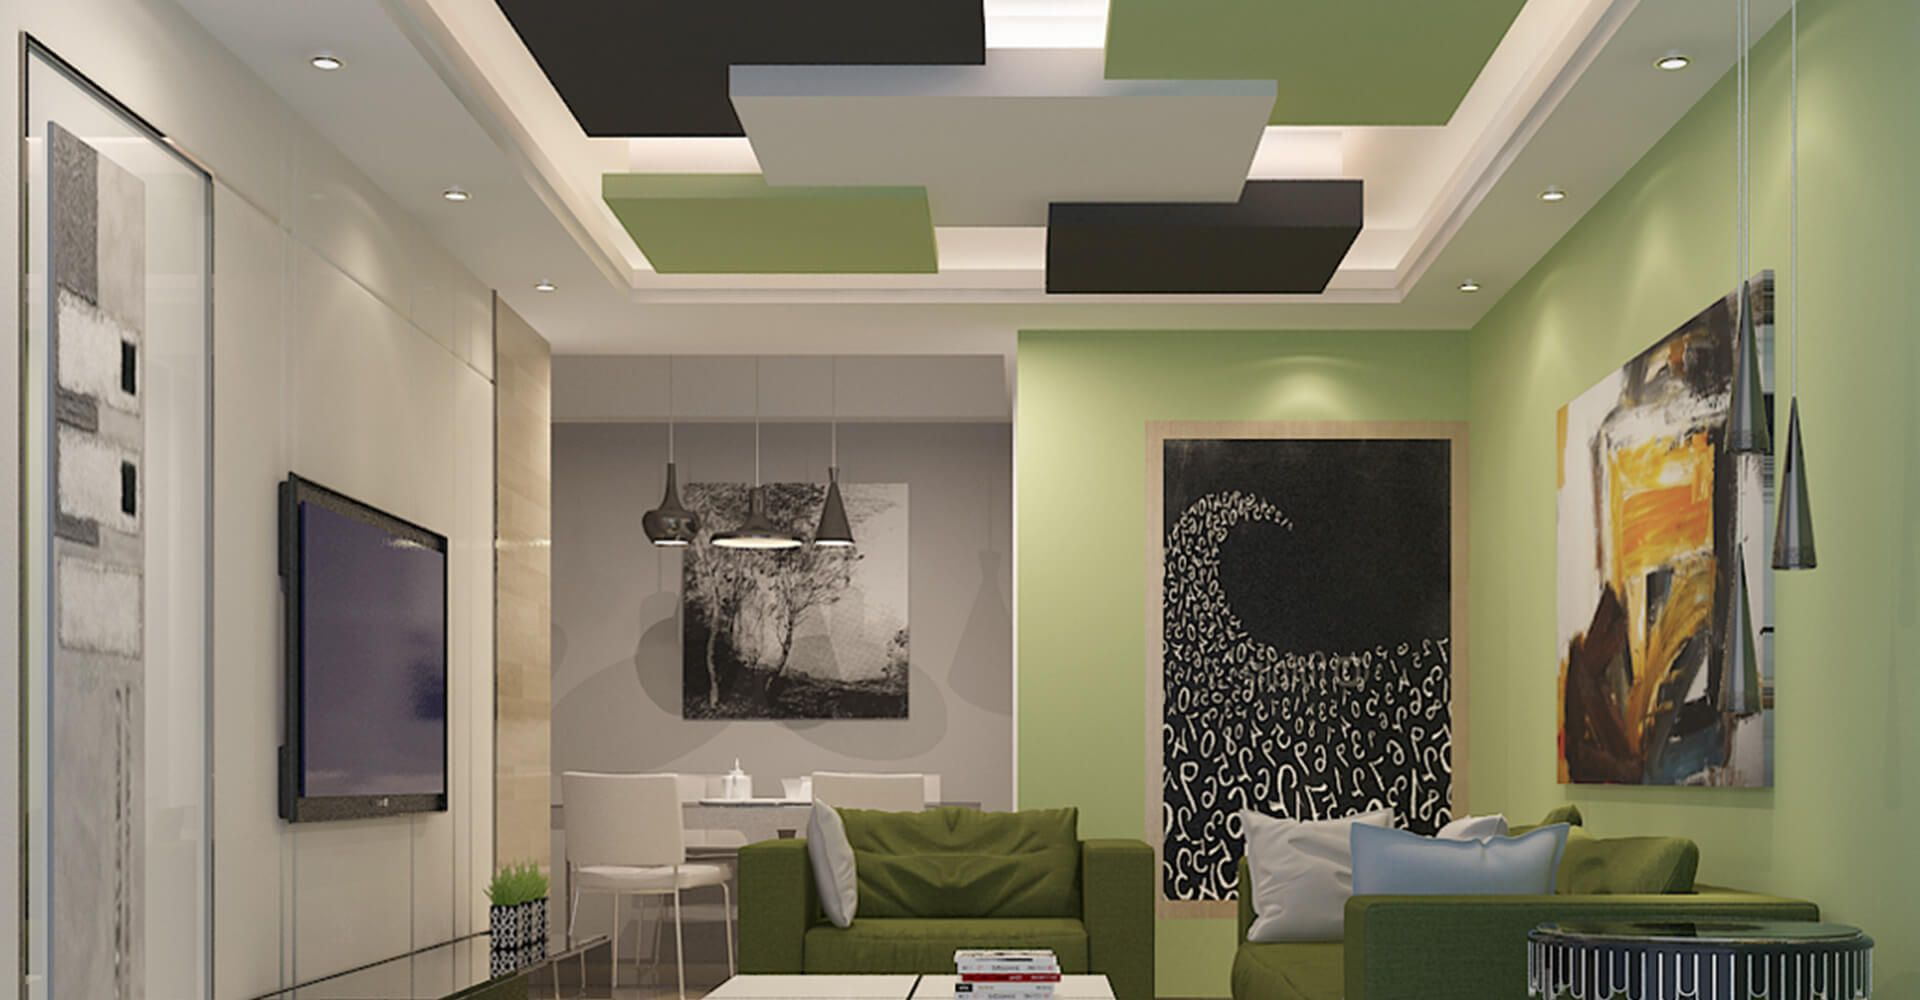 Residential false ceiling false ceiling gypsum board drywall saint gobain gyproc offers an innovative residential ceiling design ideas for various room such as living room bed room kids room and other spaces dailygadgetfo Images